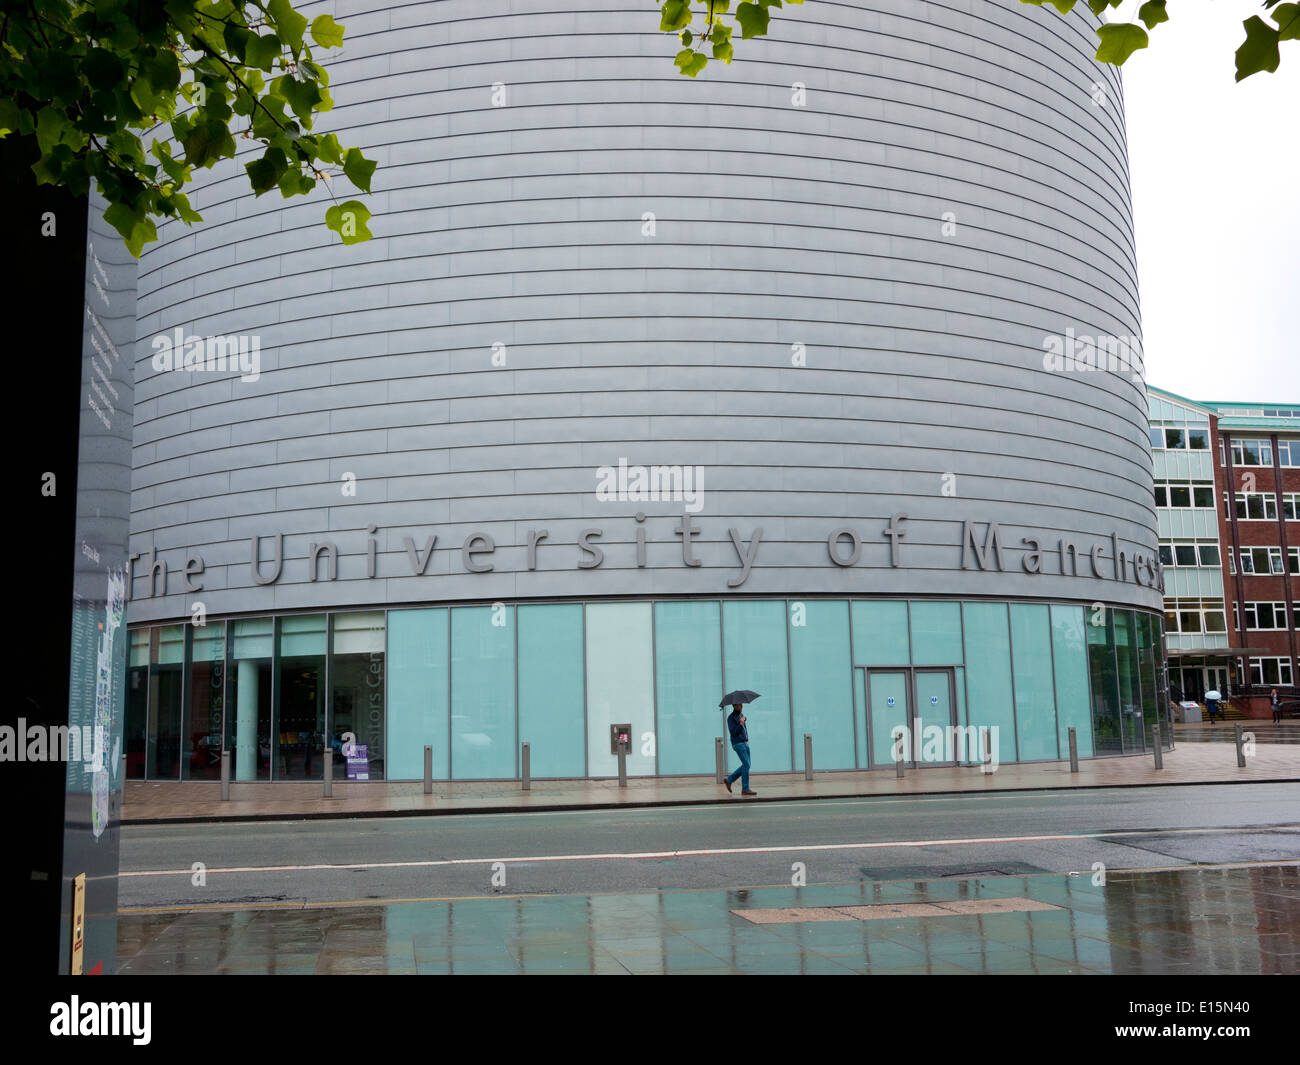 University Place which is for conferences,lectures,and a visitors centre, Oxford rd,Manchester,UK. - Stock Image